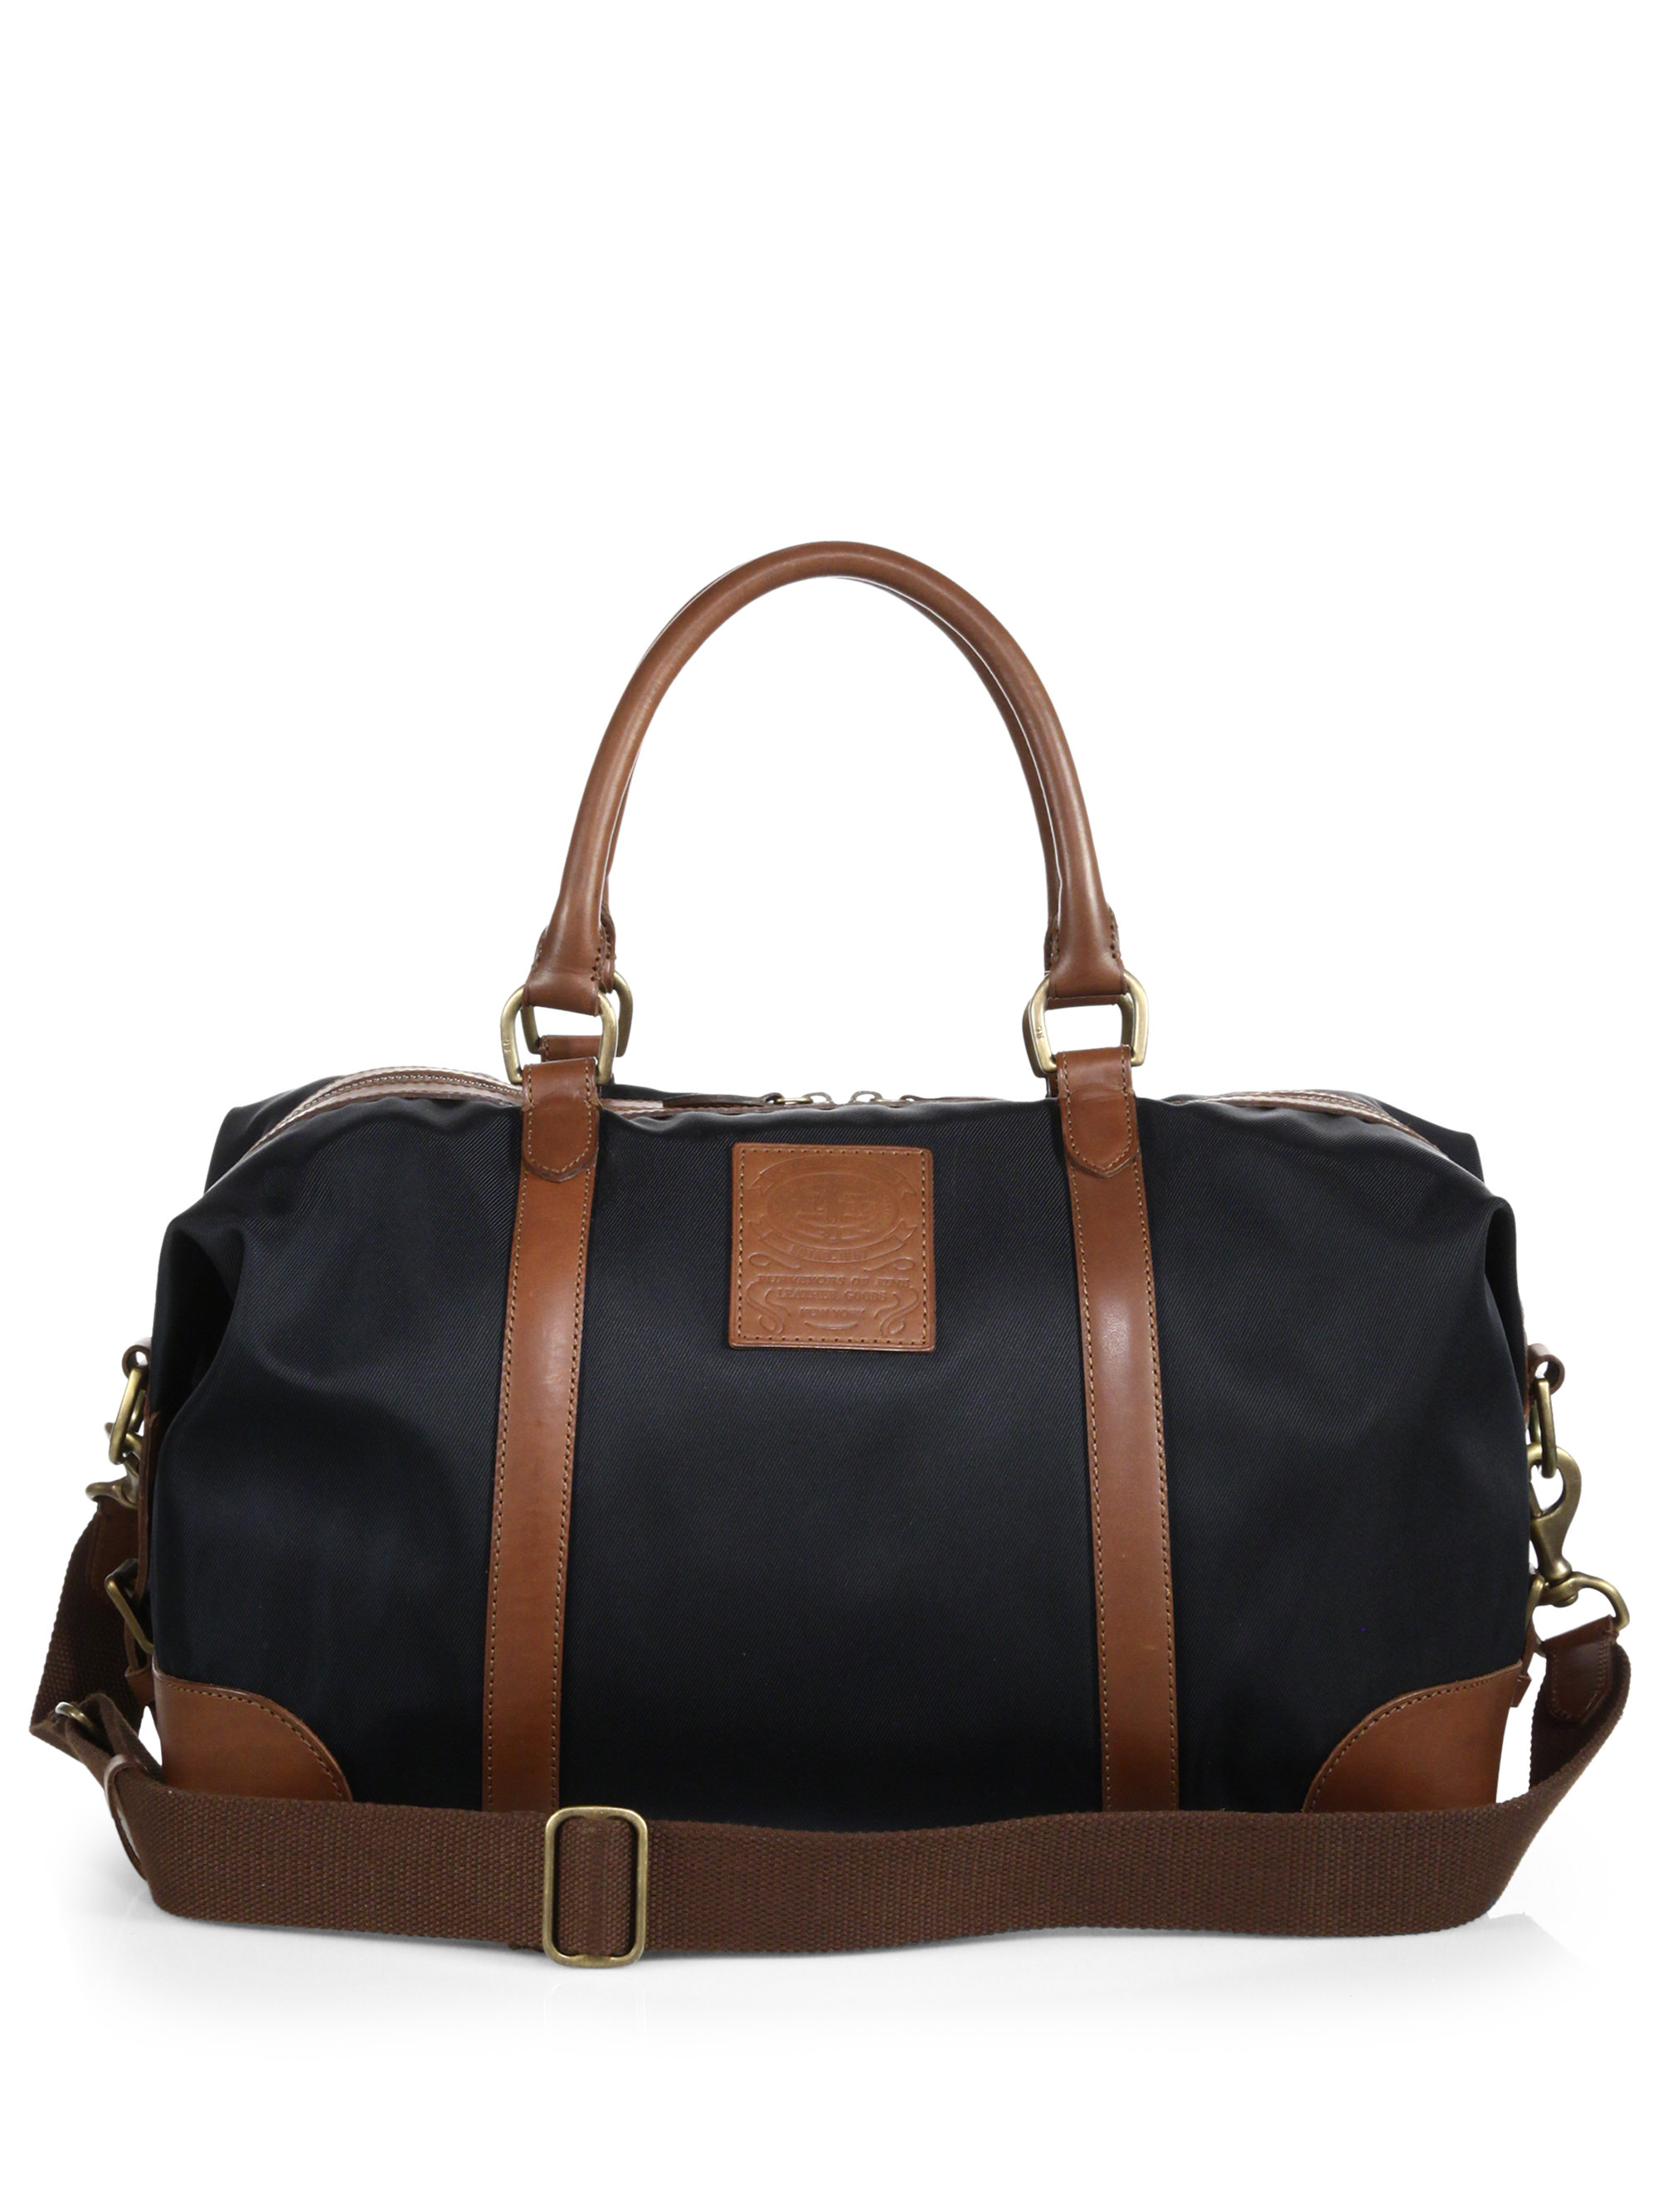 c8b1e600d038 Lyst - Polo Ralph Lauren Nylon Duffel Bag in Black for Men